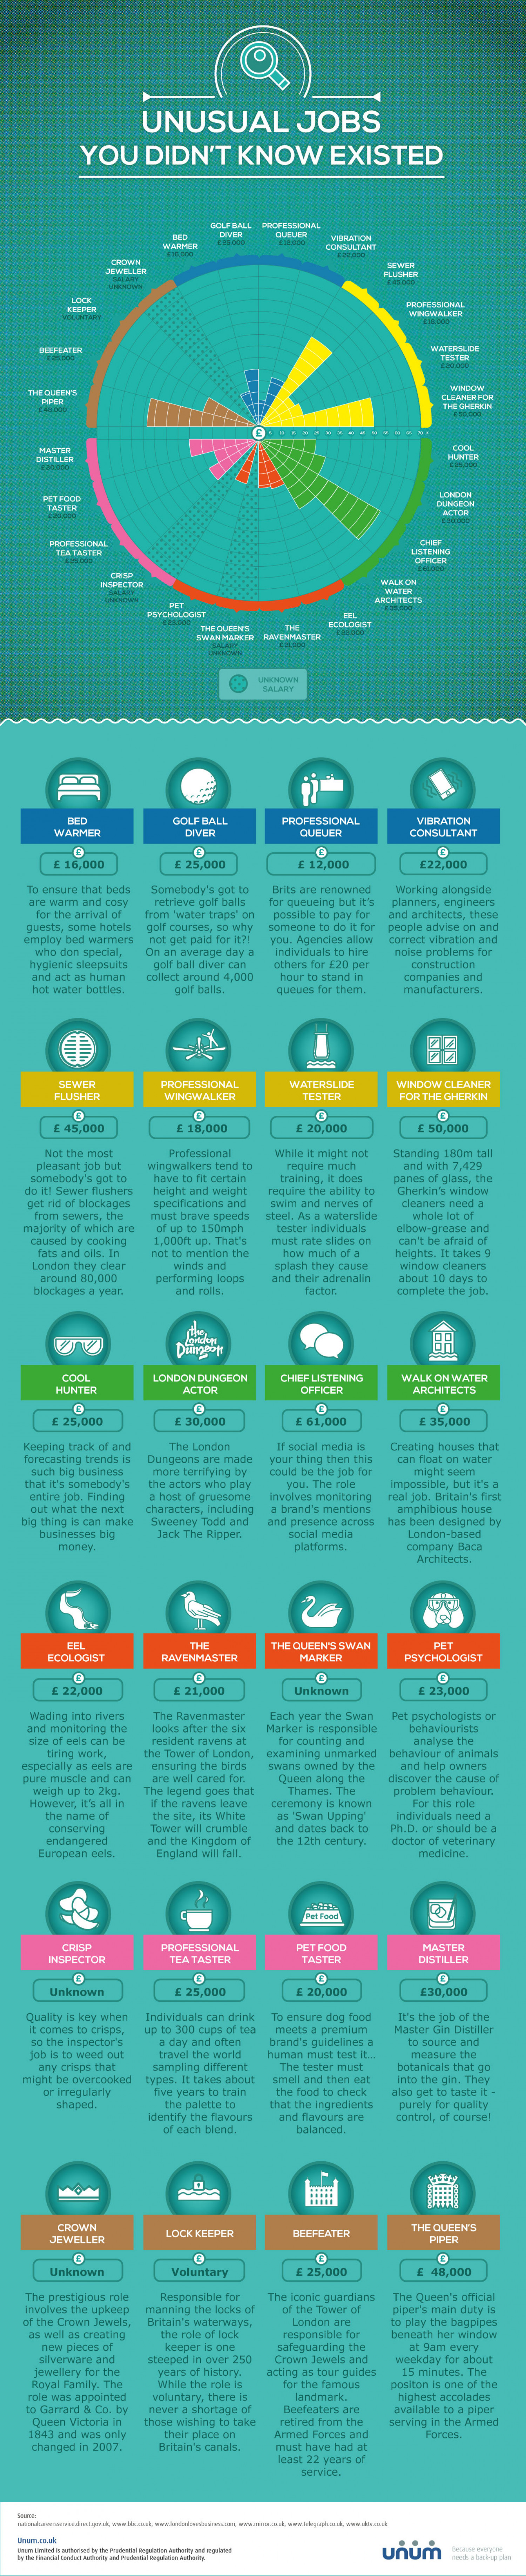 Unusual Jobs You Didn't Know Existed Infographic